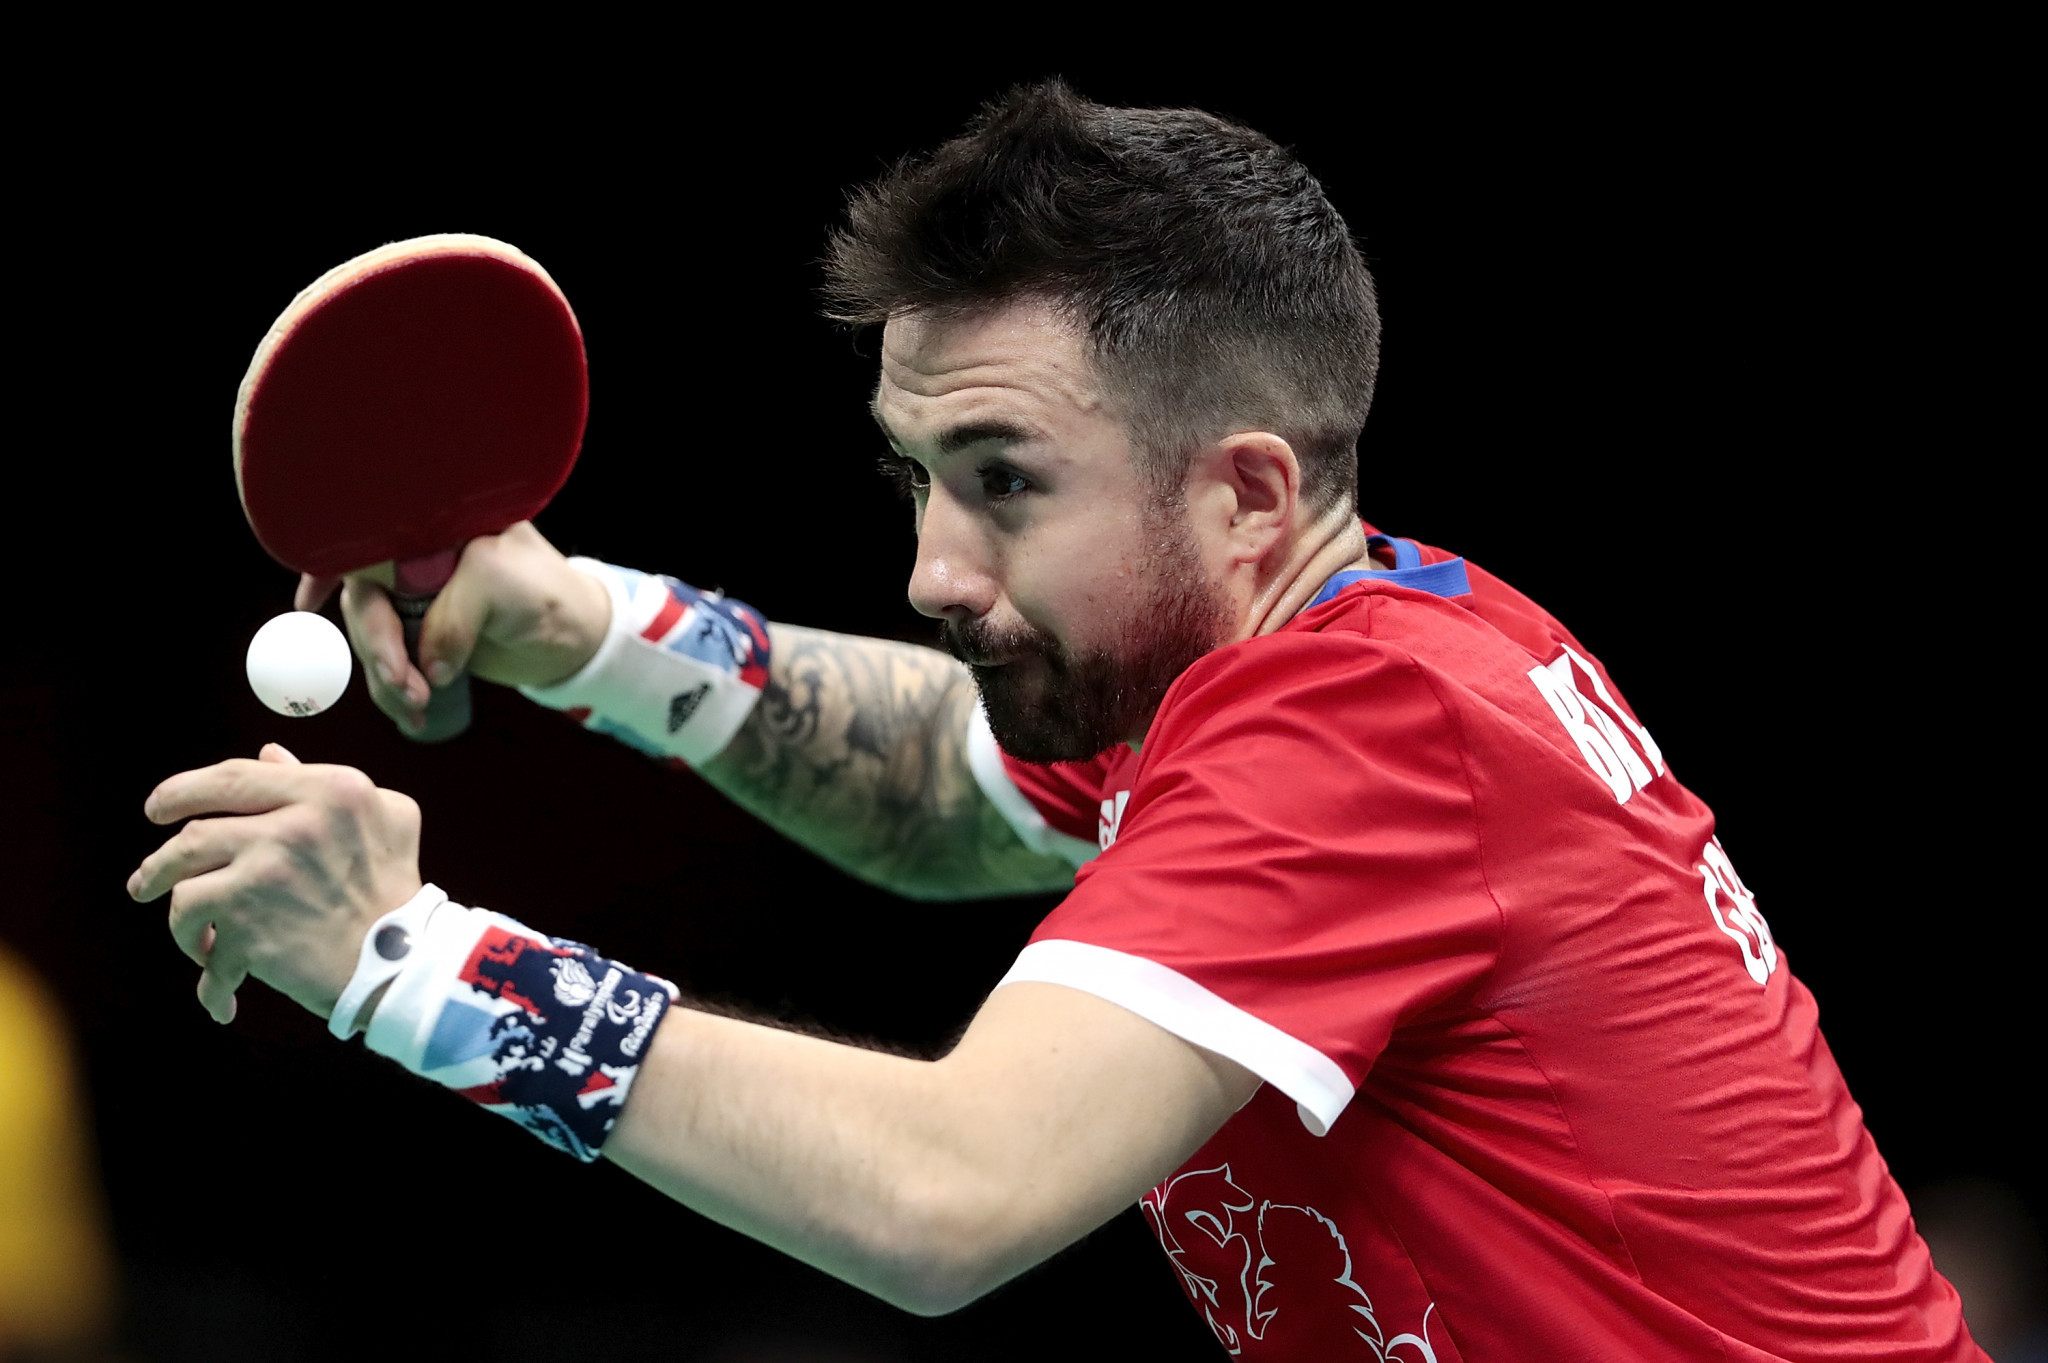 Paralympic champions Bayley and Davies headline 13-player British table tennis team for Tokyo 2020